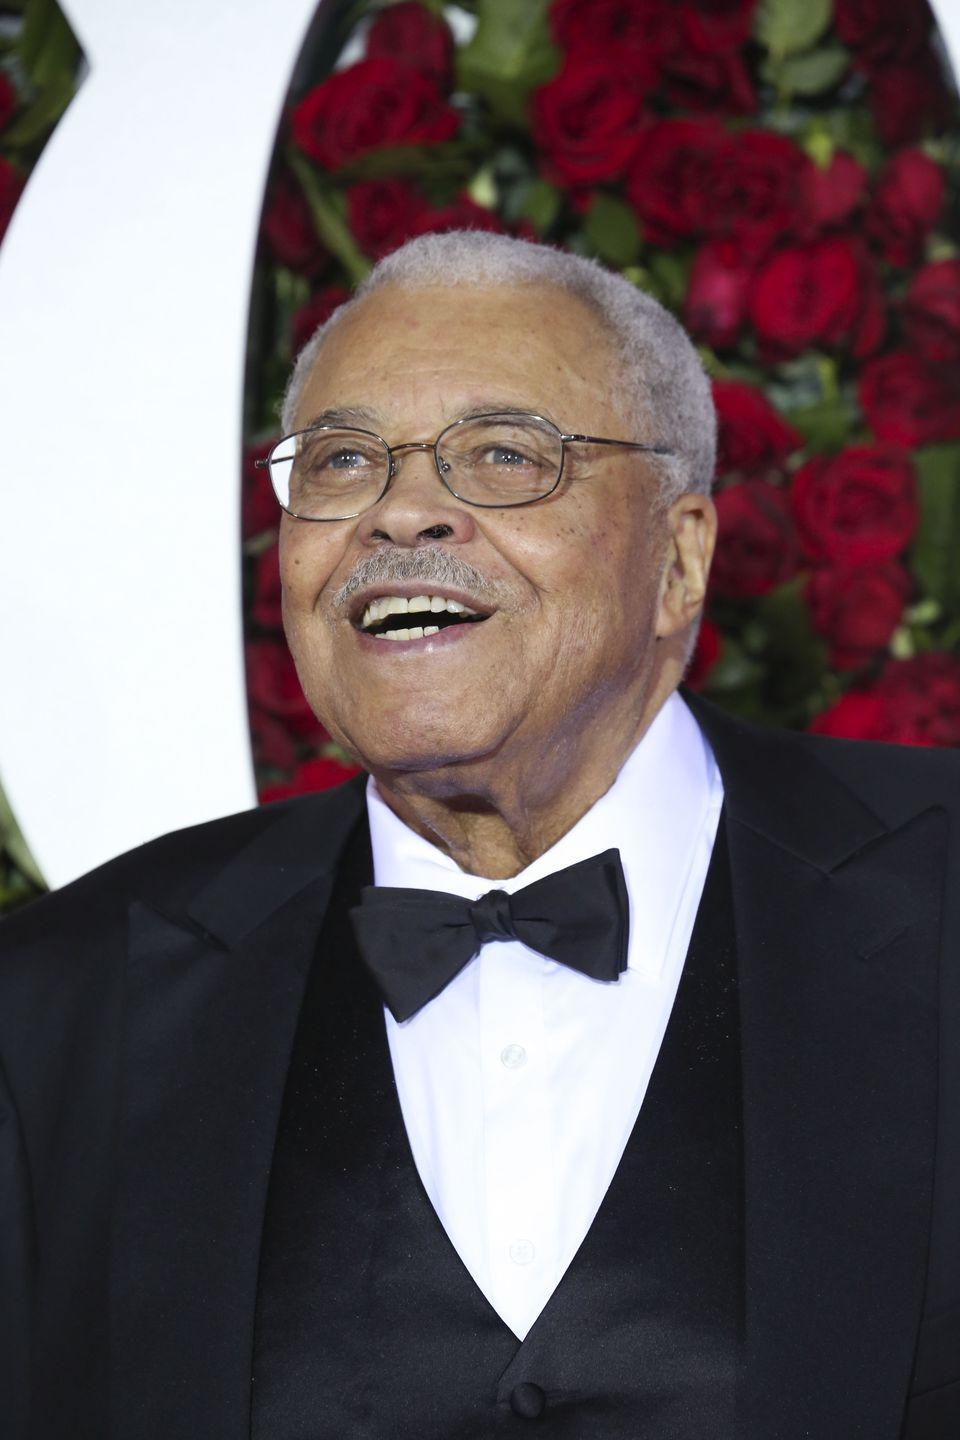 <p>You may know his voice before you recognize his face. Jones voiced both Darth Vader in <em>Star Wars</em> and Mufassa in the original <em>Lion King</em>. </p>